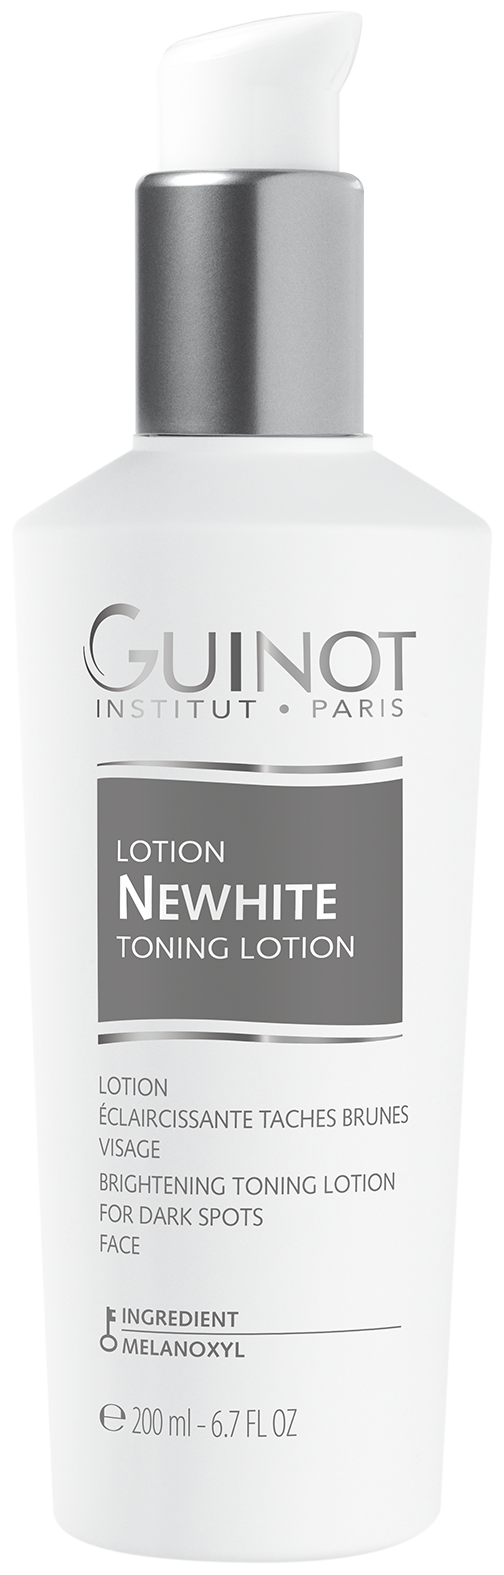 GUINOT Lotion Newhite 200ML